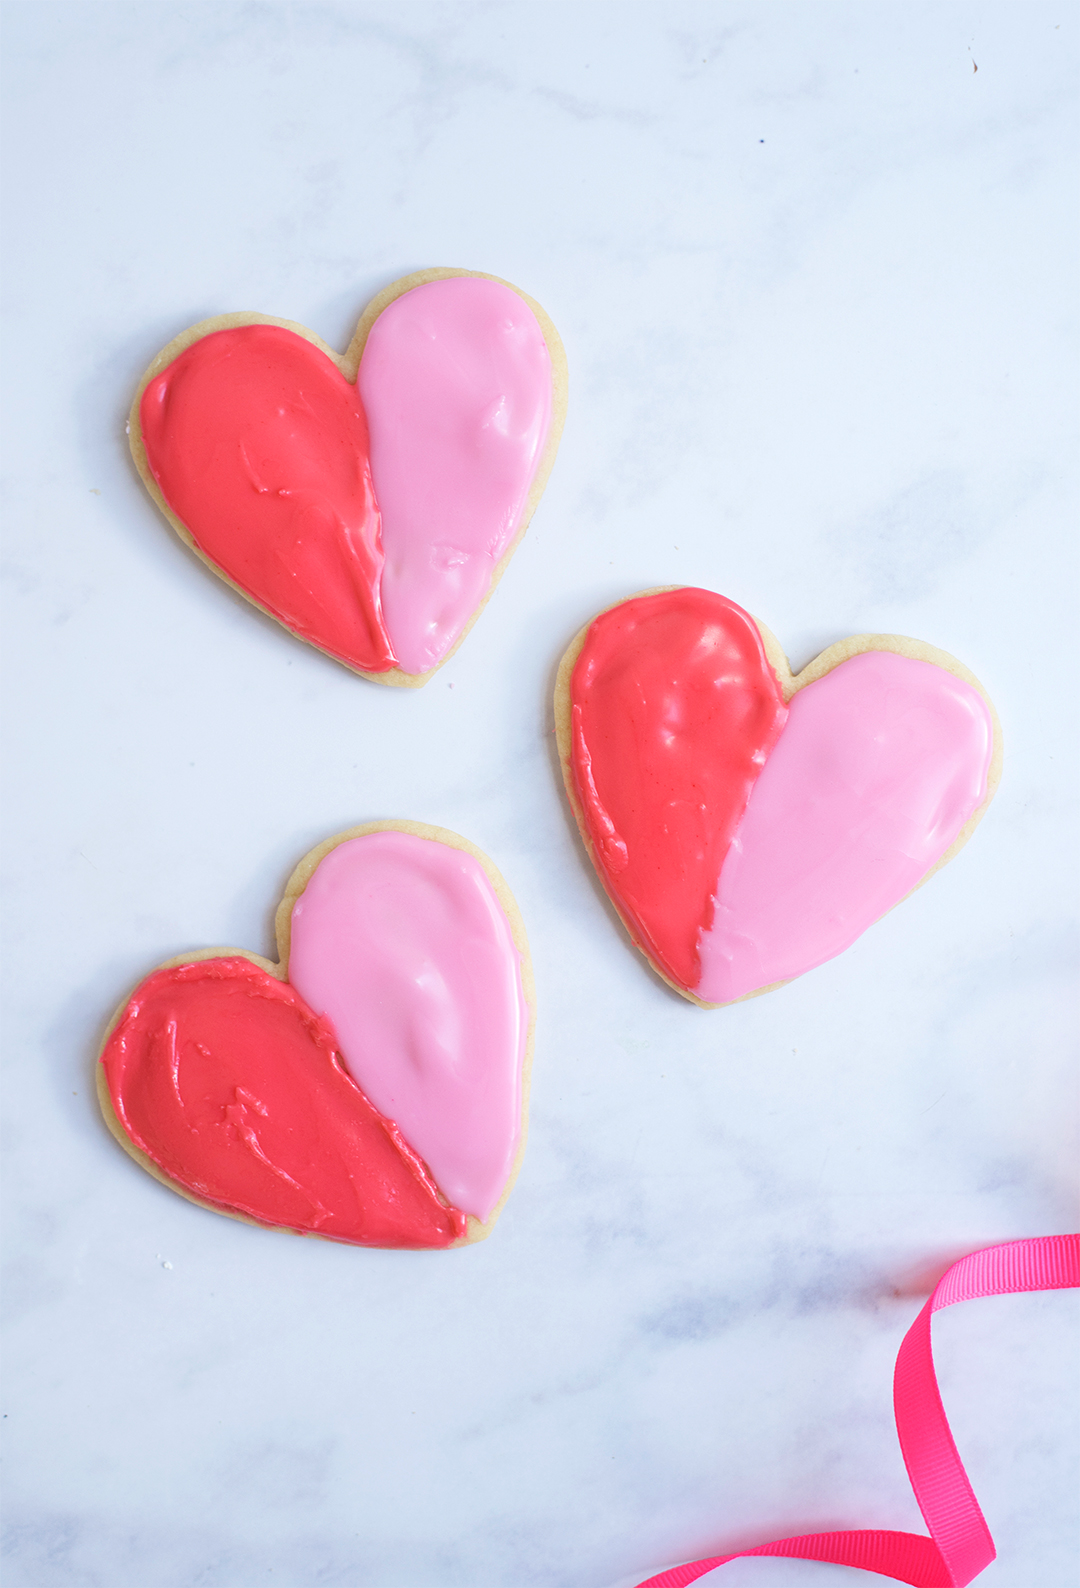 completed heart shaped cookies with red and pink frosting